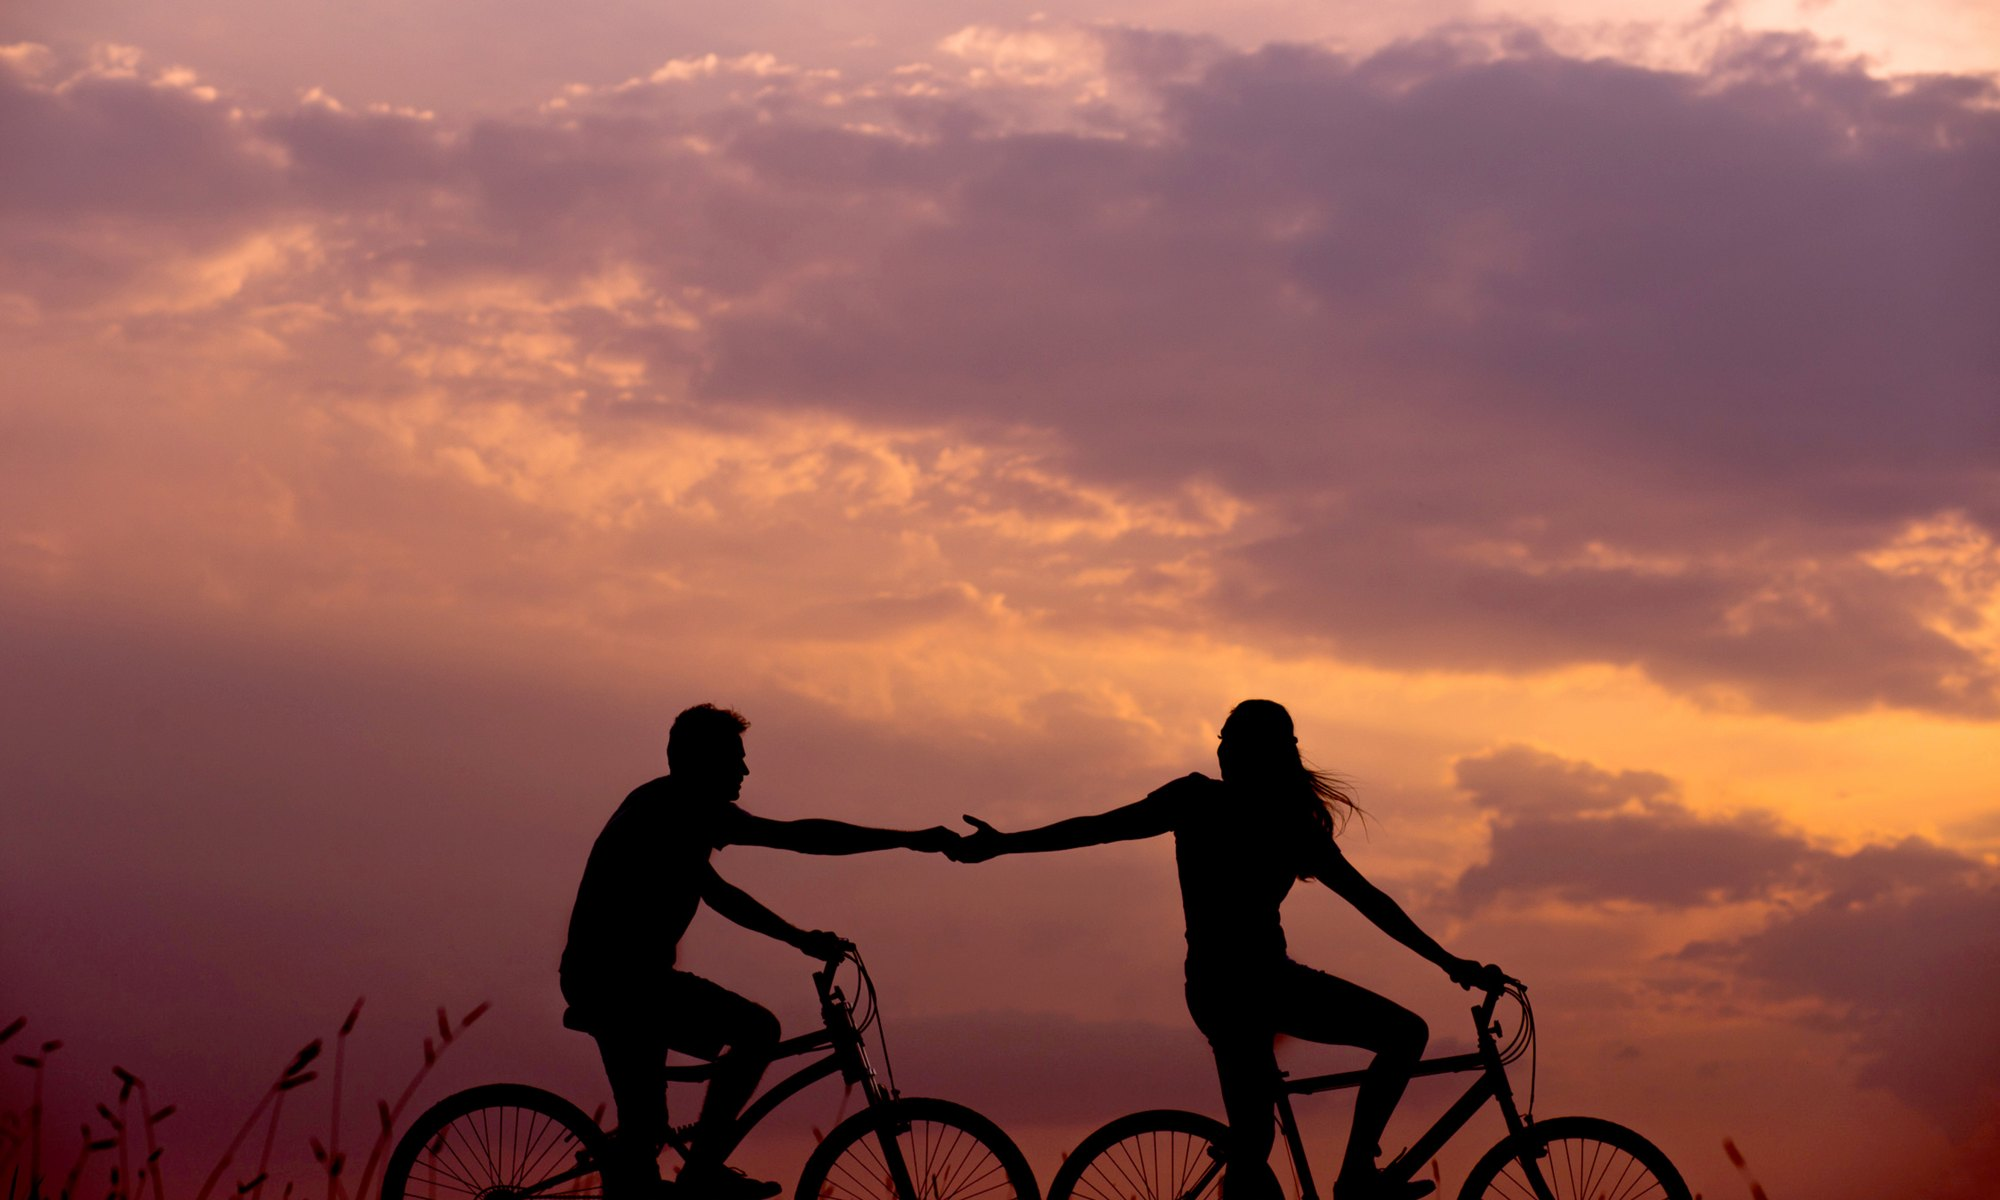 Man and woman in a sexless relationship riding bikes together